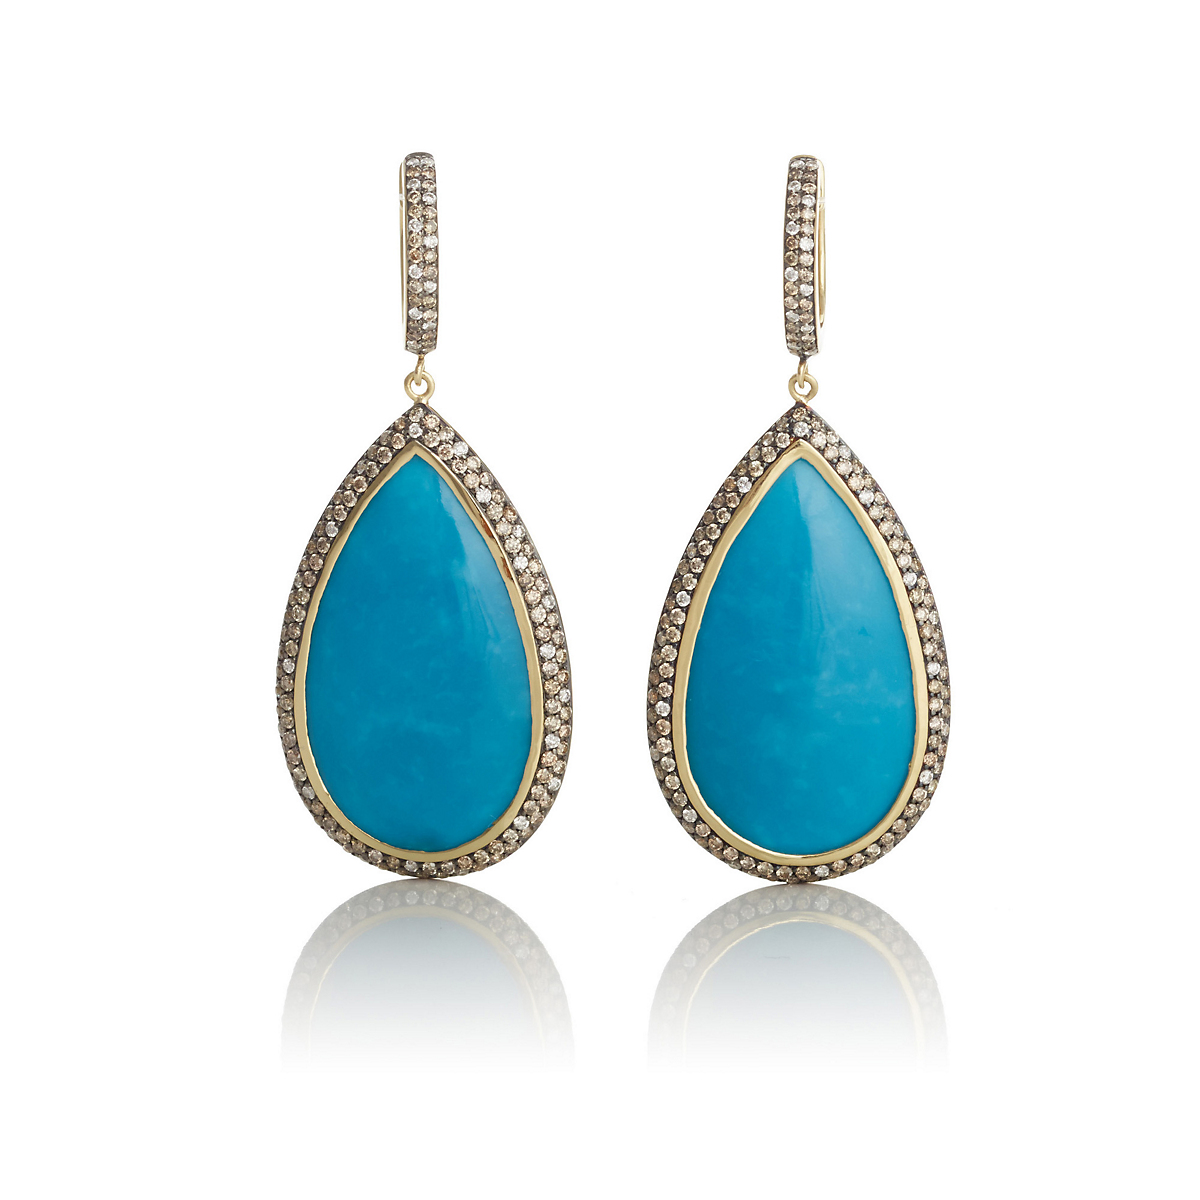 Turquoise & Diamond Border Teardrop Earrings